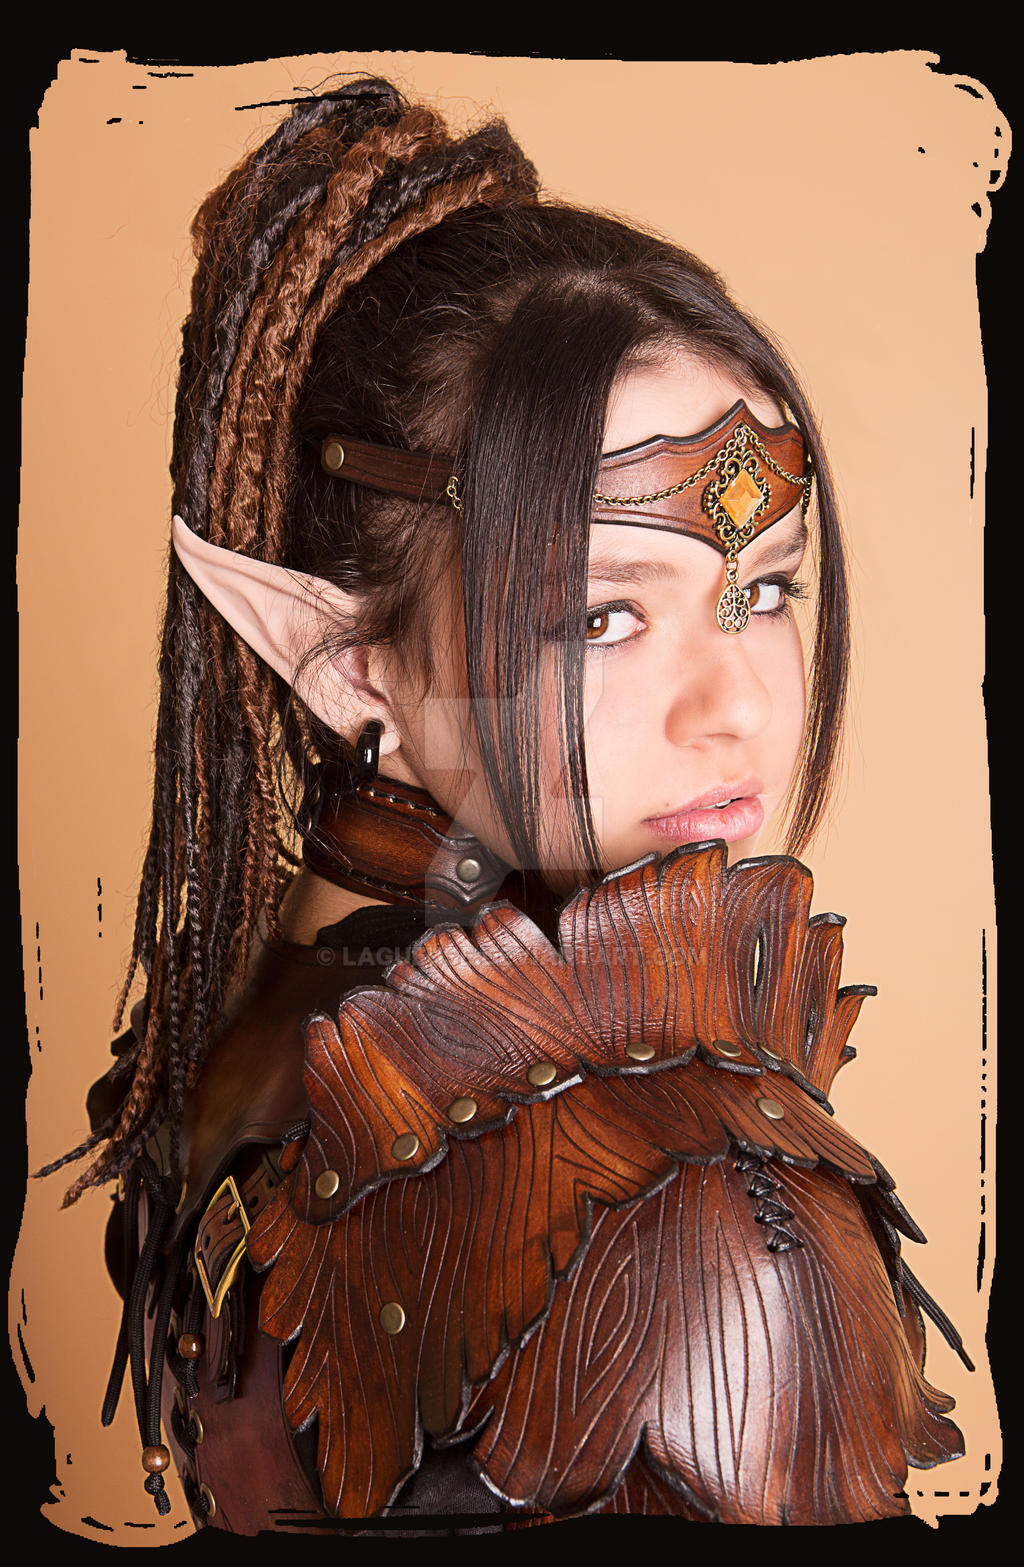 Wood Elven Armor 3 by Lagueuse